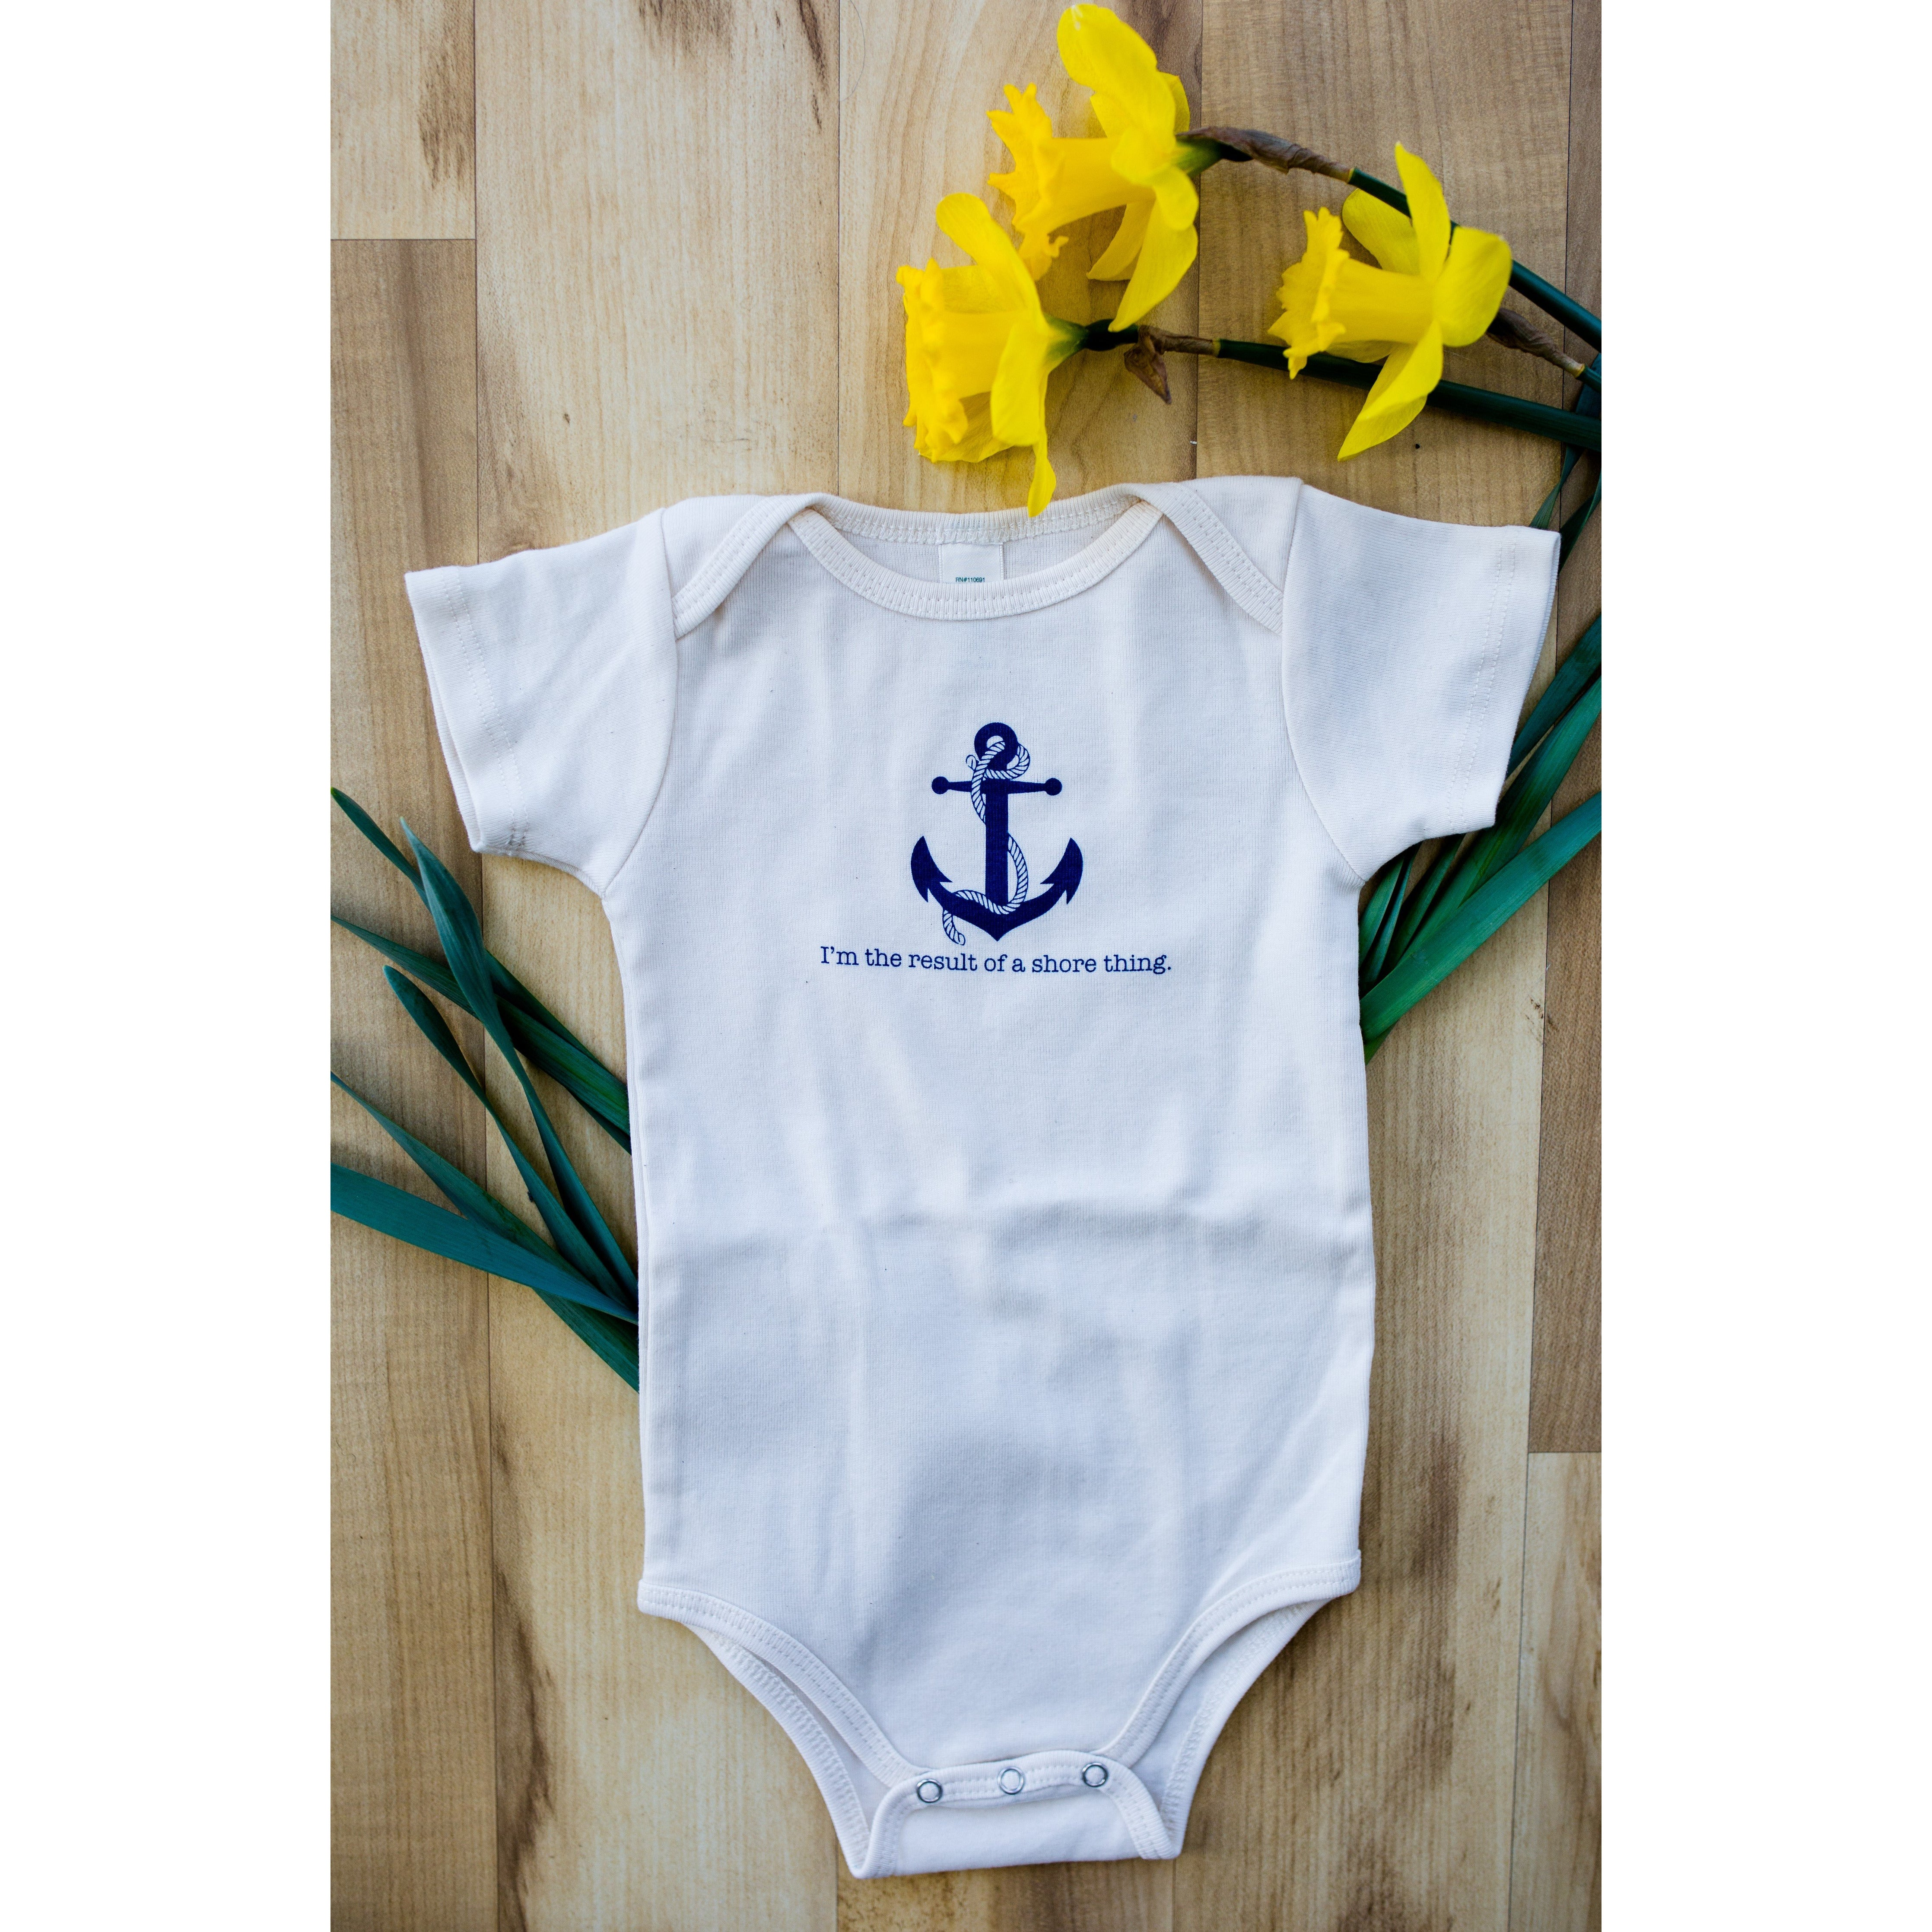 Deals Beach Baby Gift Set - 3 Different Complimentary Onesies! - Simply Chickie